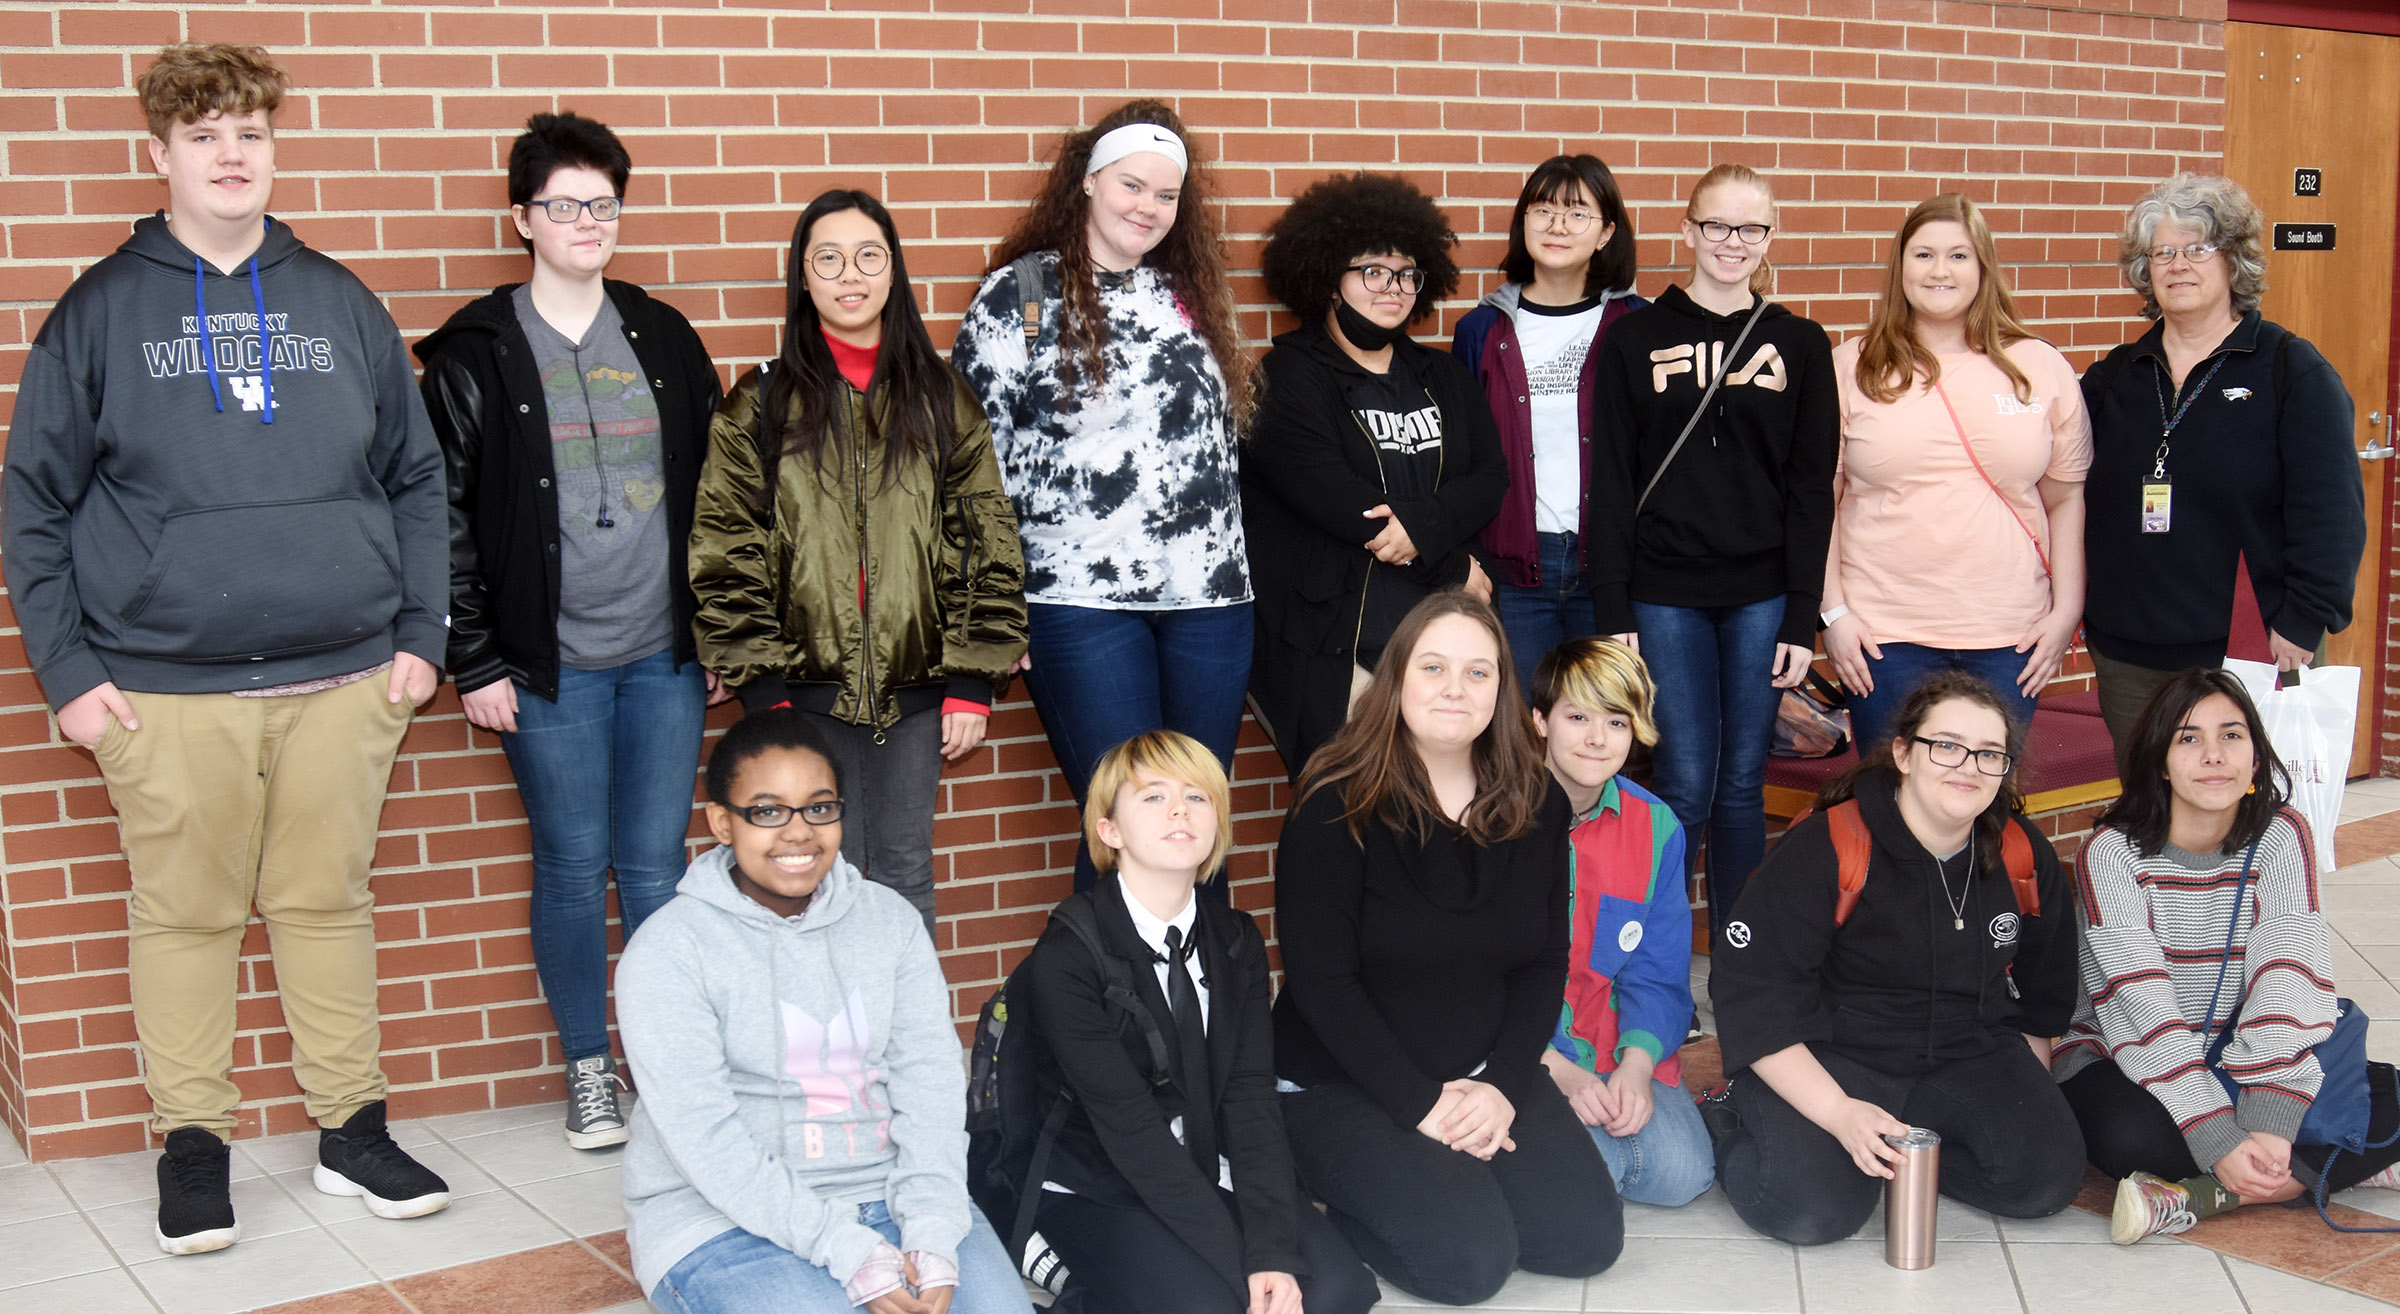 "CHS National Art Honor Society students attending ""A Day in the Visual Arts"" at Campbellsville University are, from left, front, freshman Jasmine Mitchell, juniors Christina Phipps, Ruby Hatfield and Chloe Decker, freshman Haley Lopez and junior Celeste Hassman. Back, freshmen Noah Mardis and Sierra Releford, junior Annie Lee, sophomore Shallan Philpott, junior Jay Tucker, senior Hye Su Cho, sophomores Tahler Franklin and Aleah Knifley and teacher Jo Ann Harris."